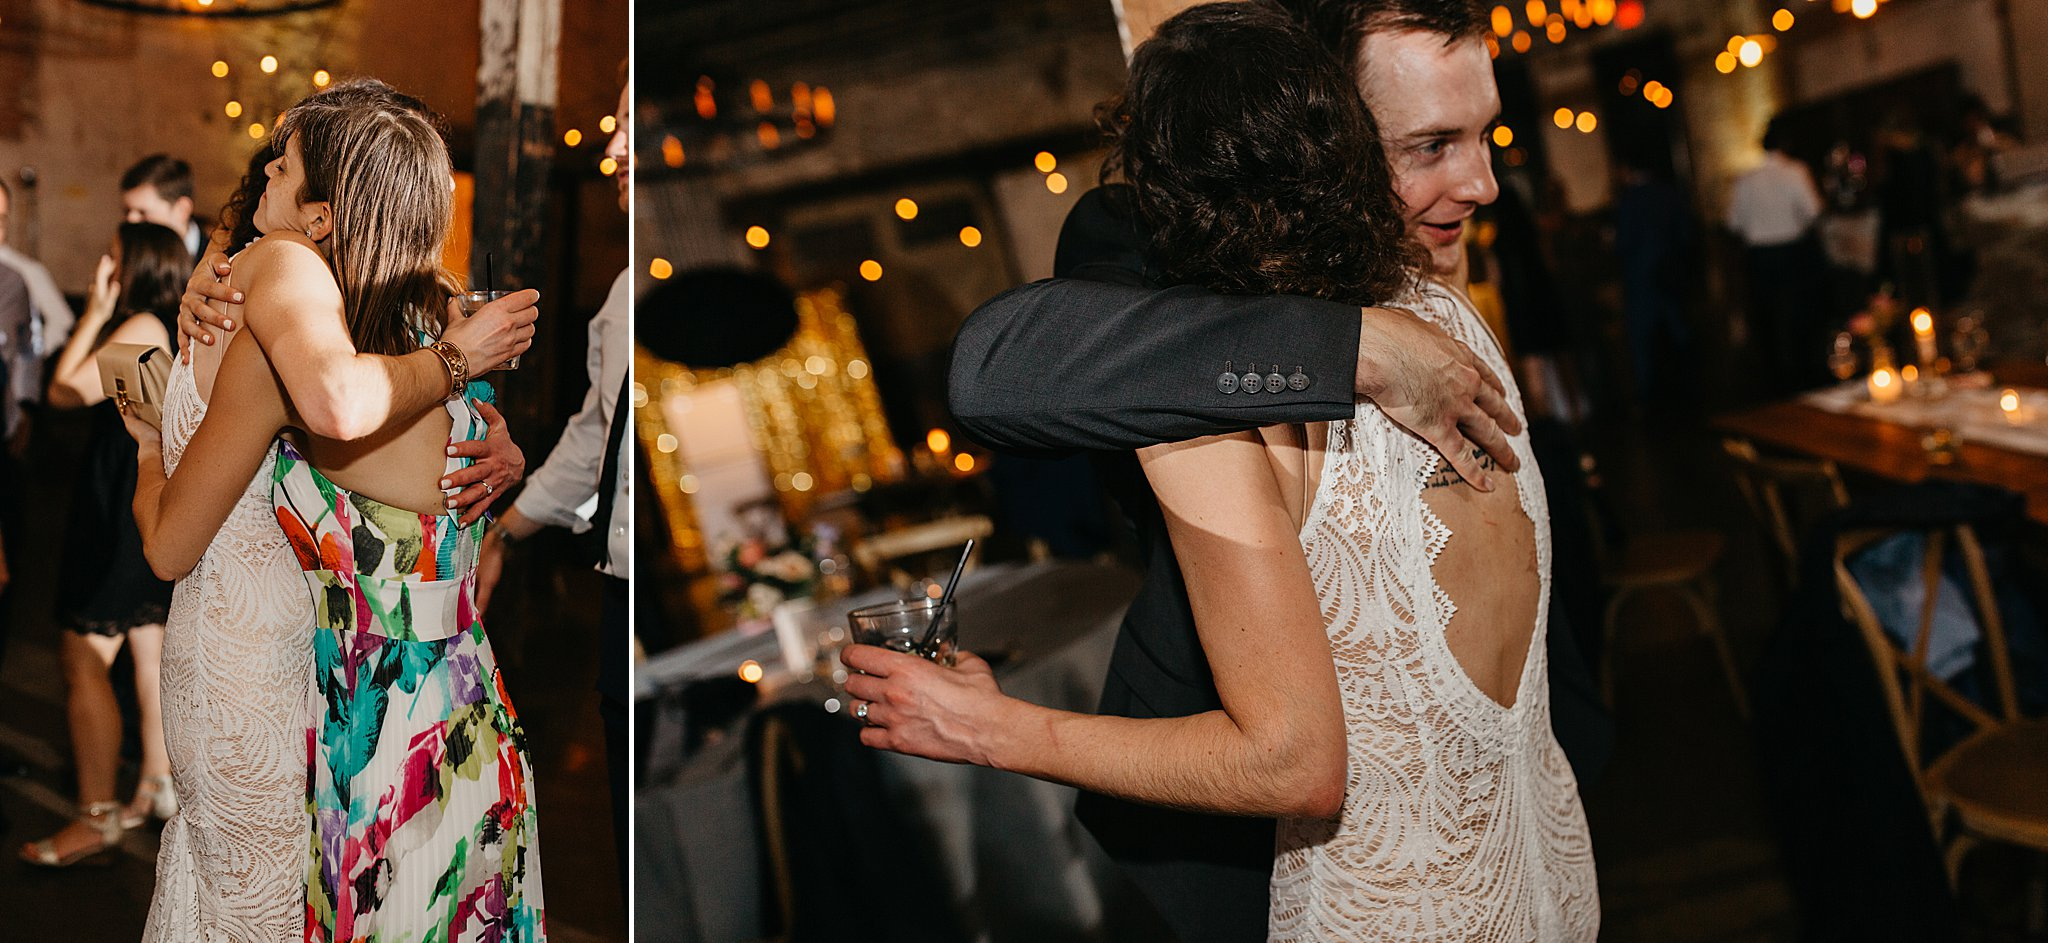 Wilderlove Co_Wedding Photographer_Industrial Wedding_Jewish Wedding_Dallas Texas Wedding_Brake & Clutch Warehouse_North Texas Photographer_0098.jpg